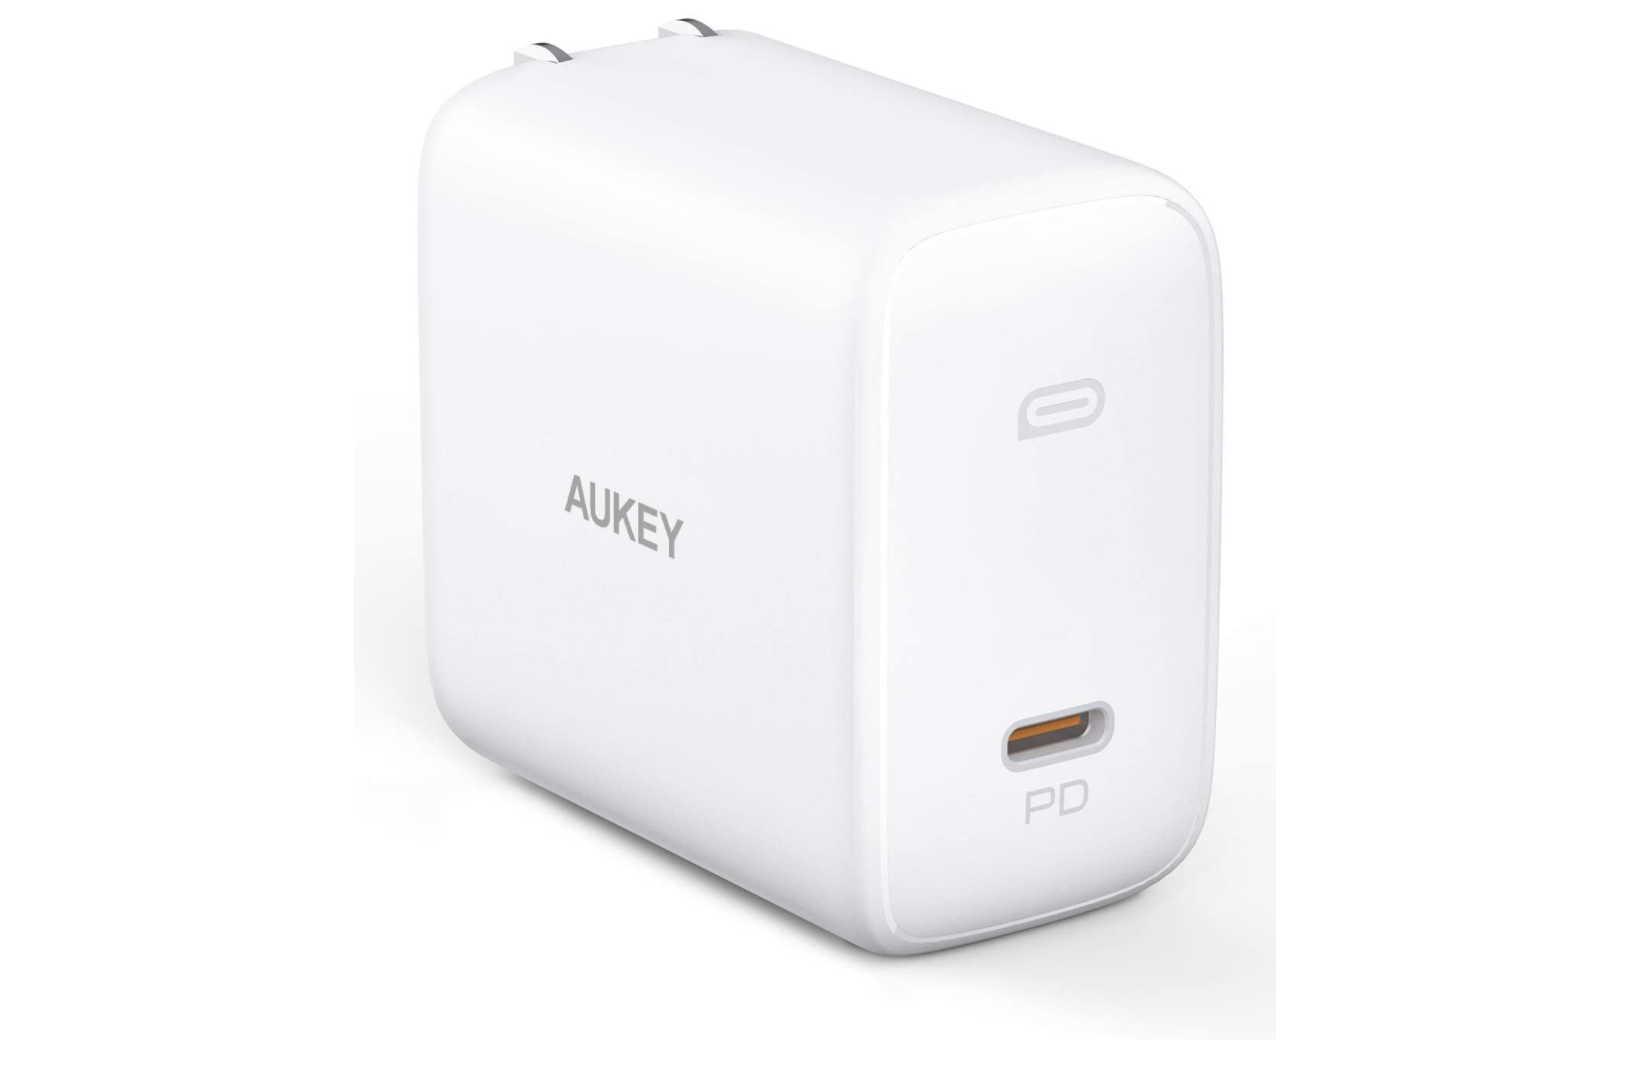 AUKEY's 100W MacBook Pro USB-C charger is now 30% off